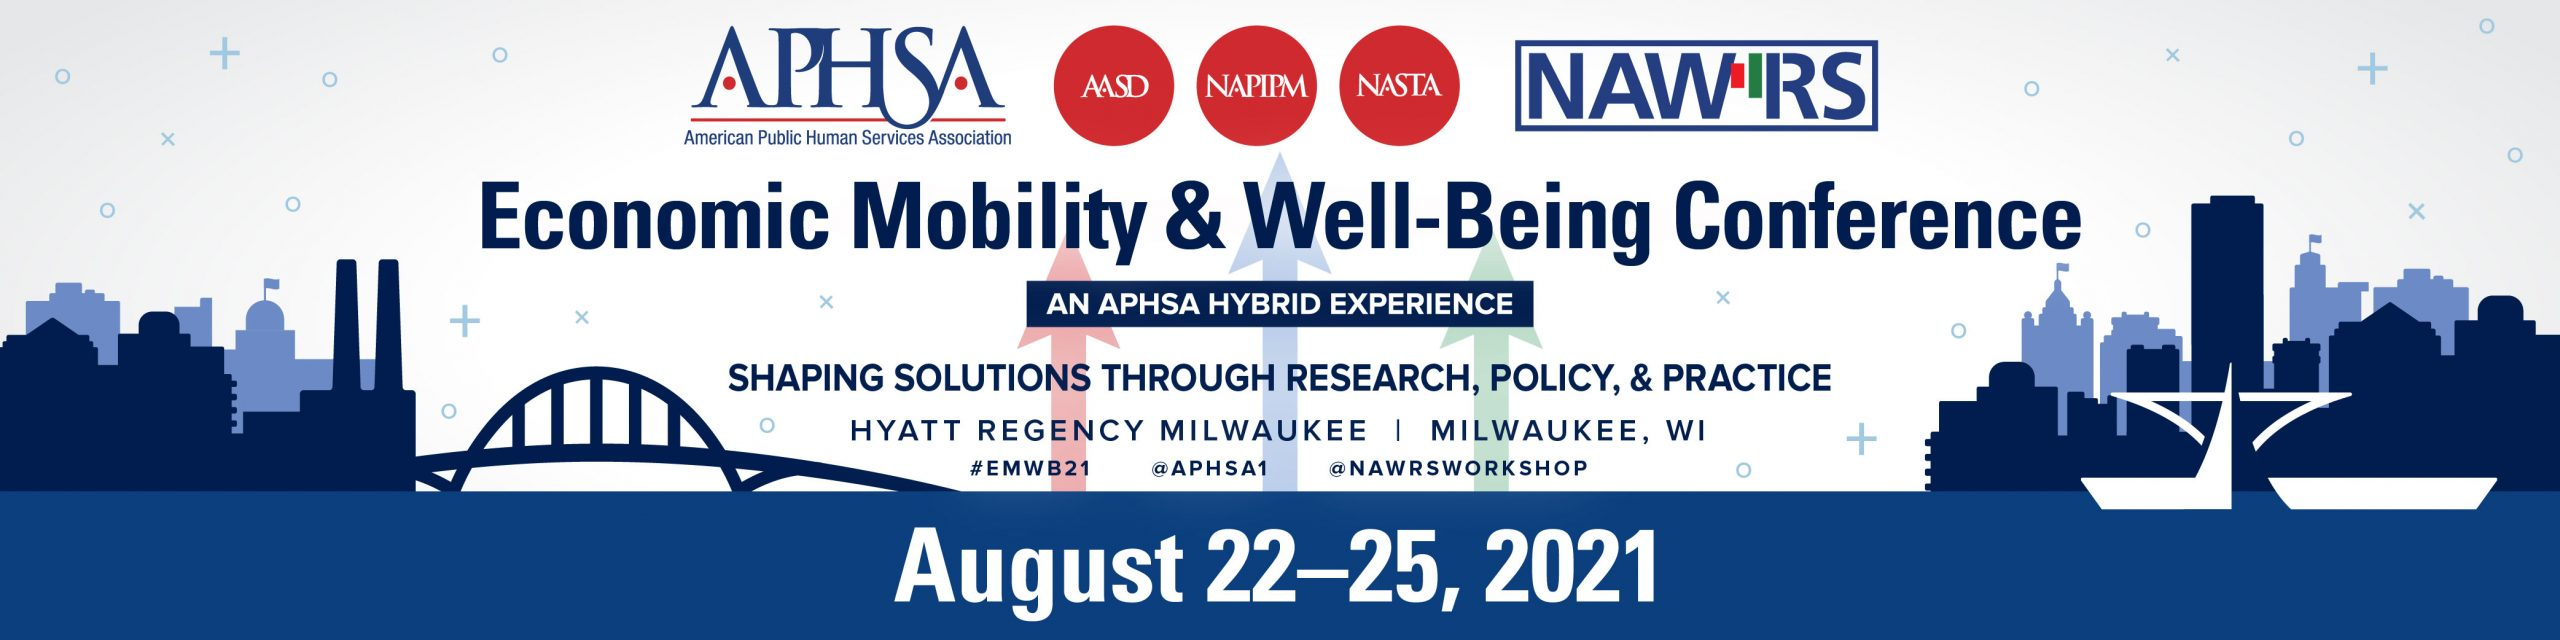 Economic Mobility & Well-Being Conference